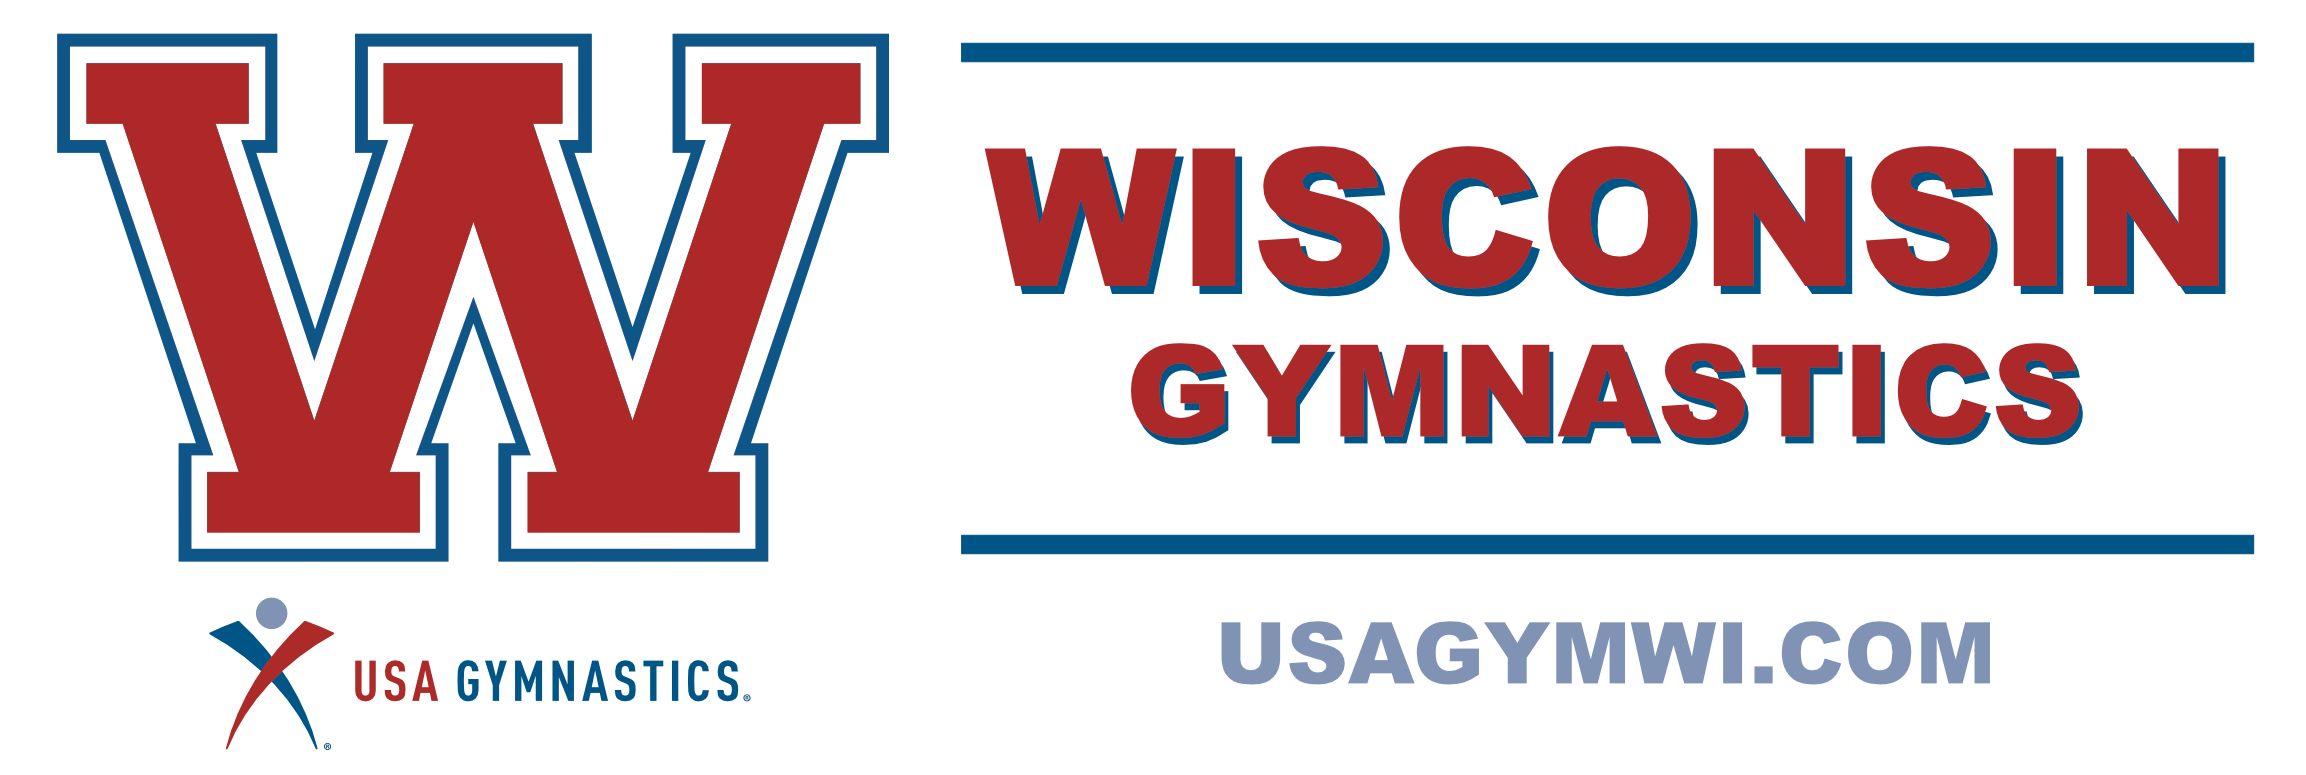 The Official USA Gym Website for Wisconsin Women's Gymnastics